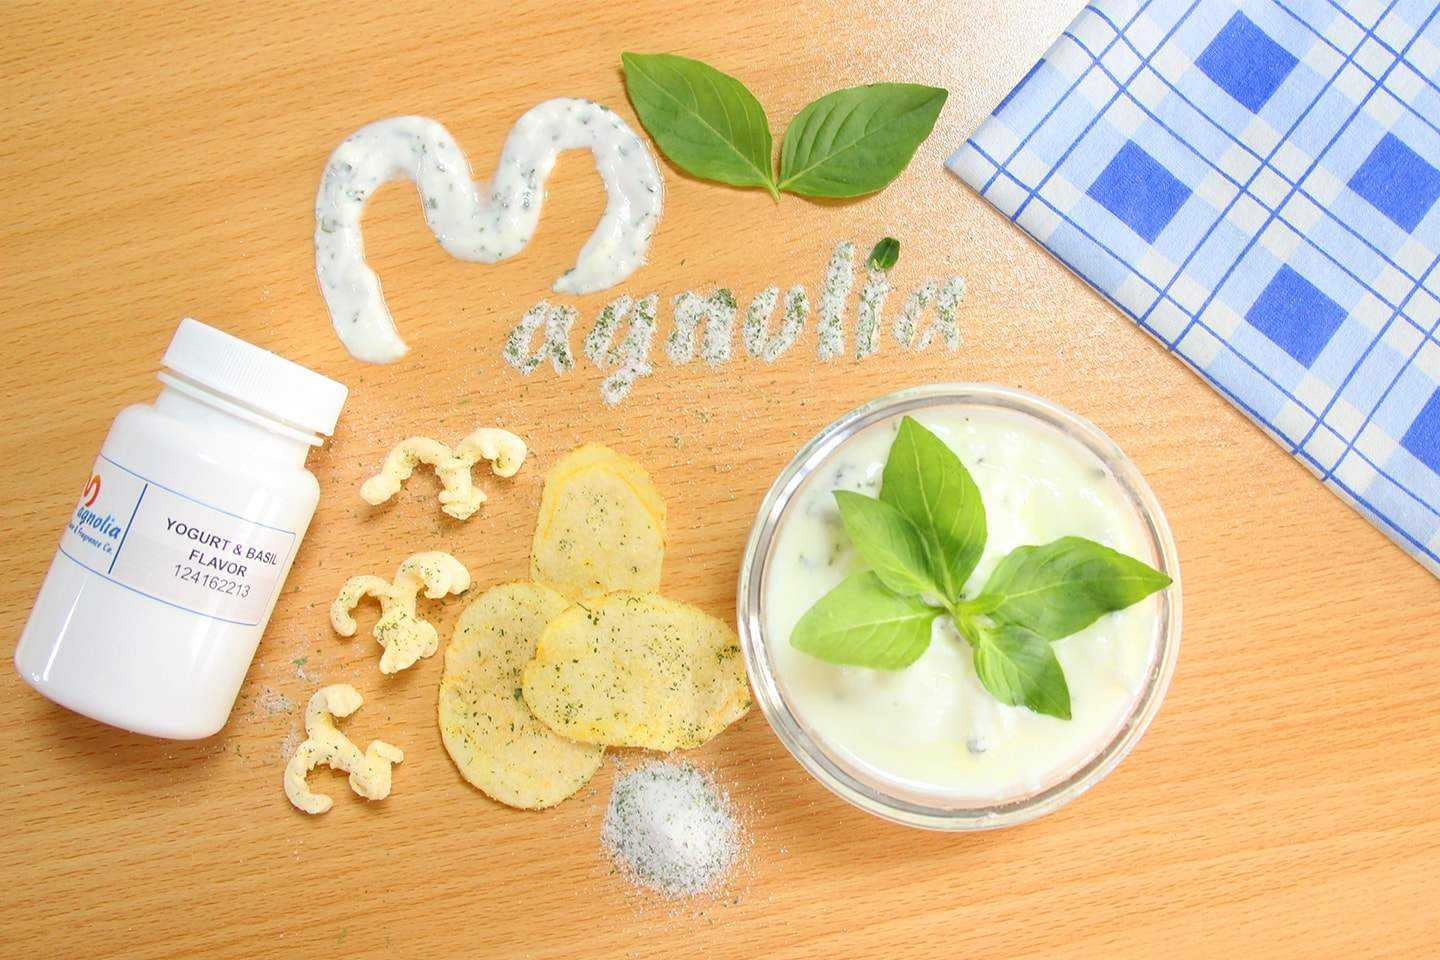 Yogurt and Basil flavor: A new product from Magnolia Flavor and Fragrance Co